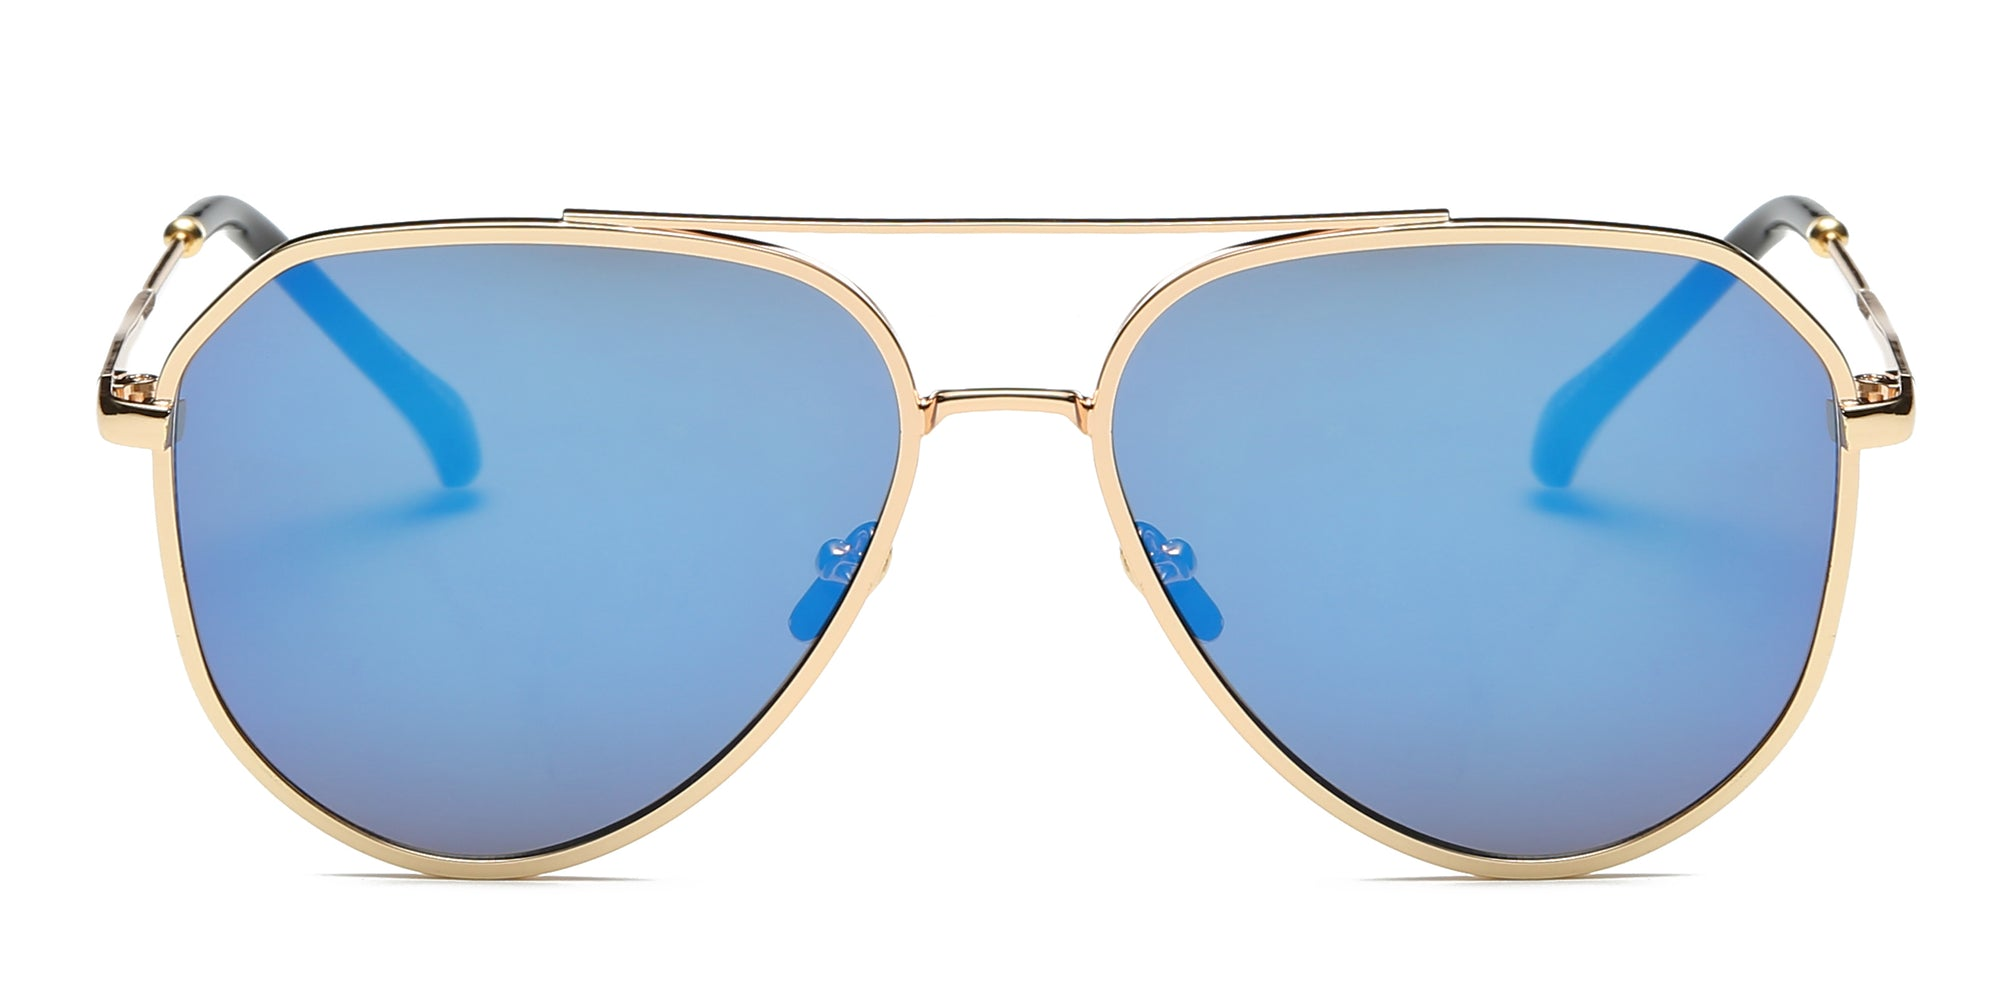 S2046 - Classic Mirrored Aviator Sunglasses - Wholesale Sunglasses and glasses